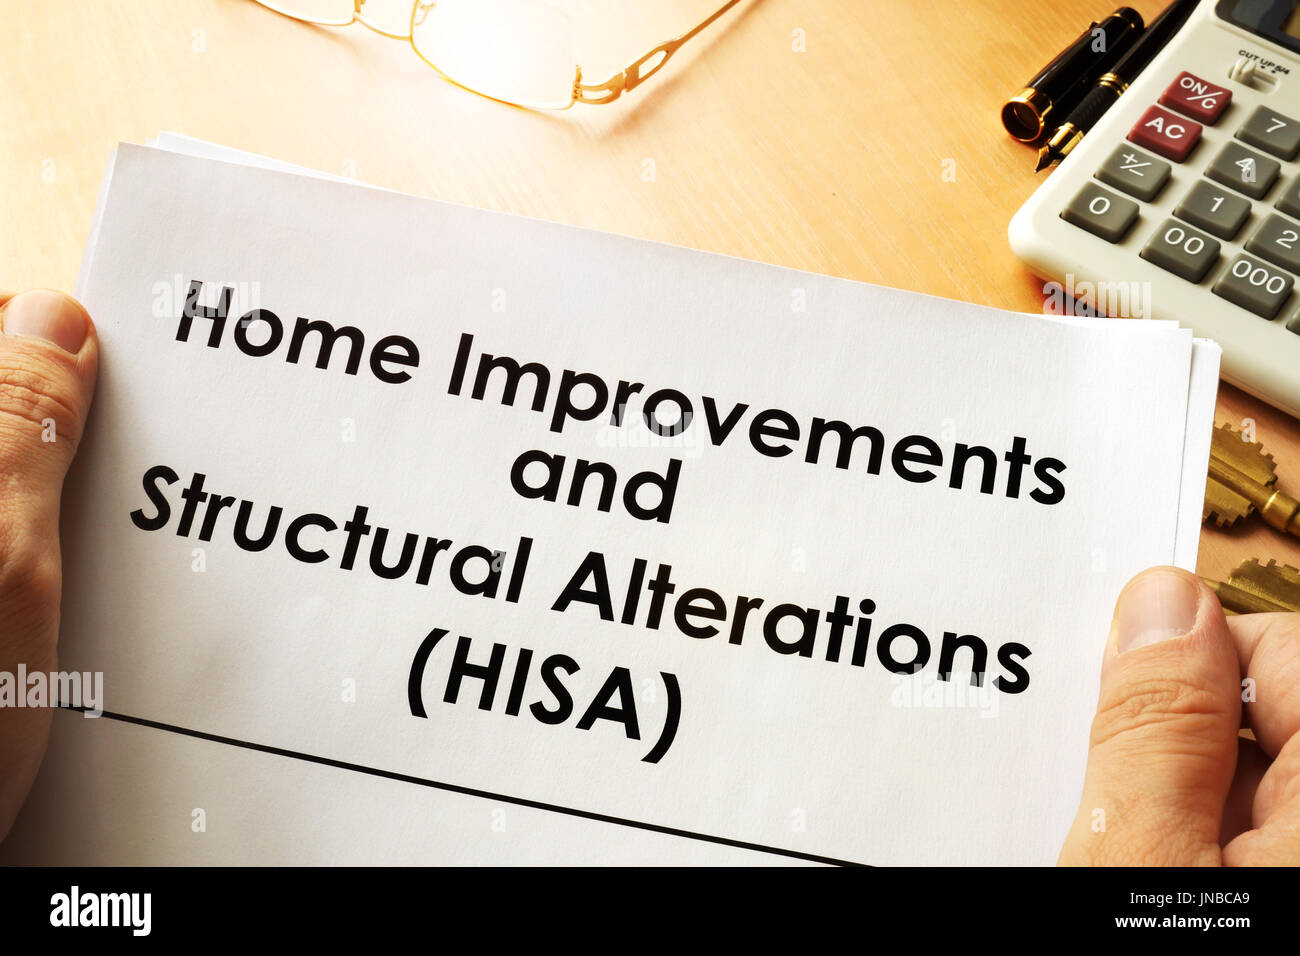 Document with name Home Improvements and Structural Alterations (HISA) - Stock Image